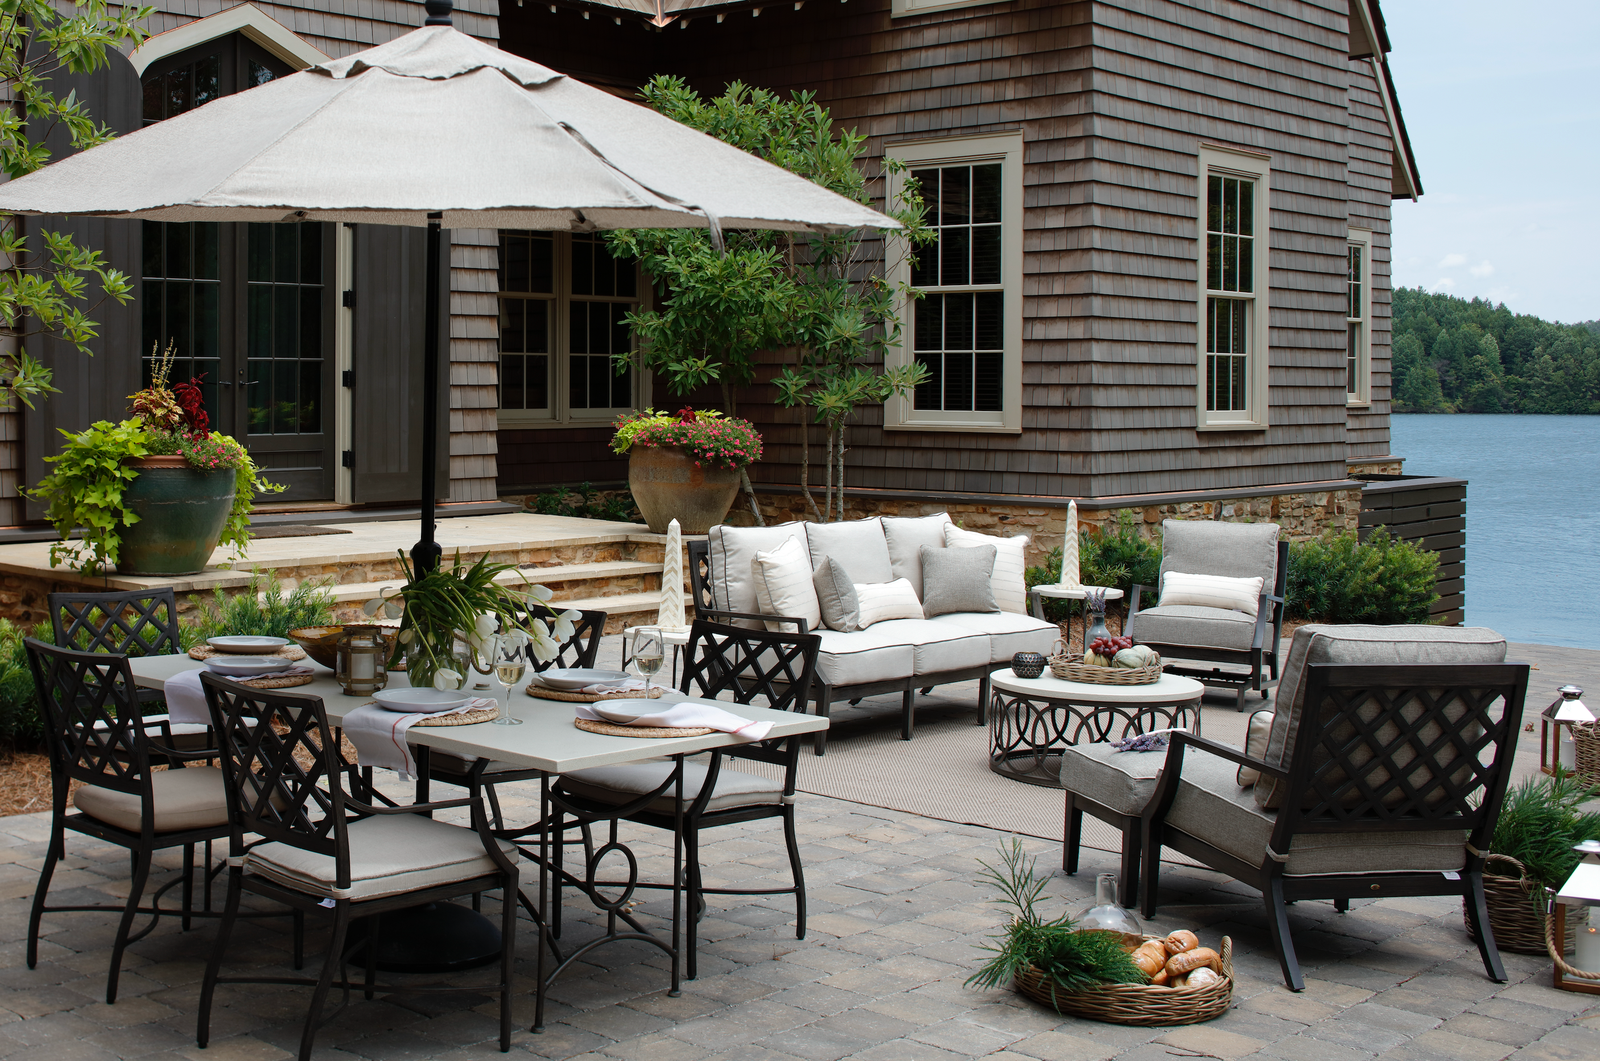 ... Are Perfect For You. If Your Backyard Is Full Of Flowering Plants And  Colorful Pots, Then A Neutral Patio Umbrella Will Help Compliment All The  Hard ...